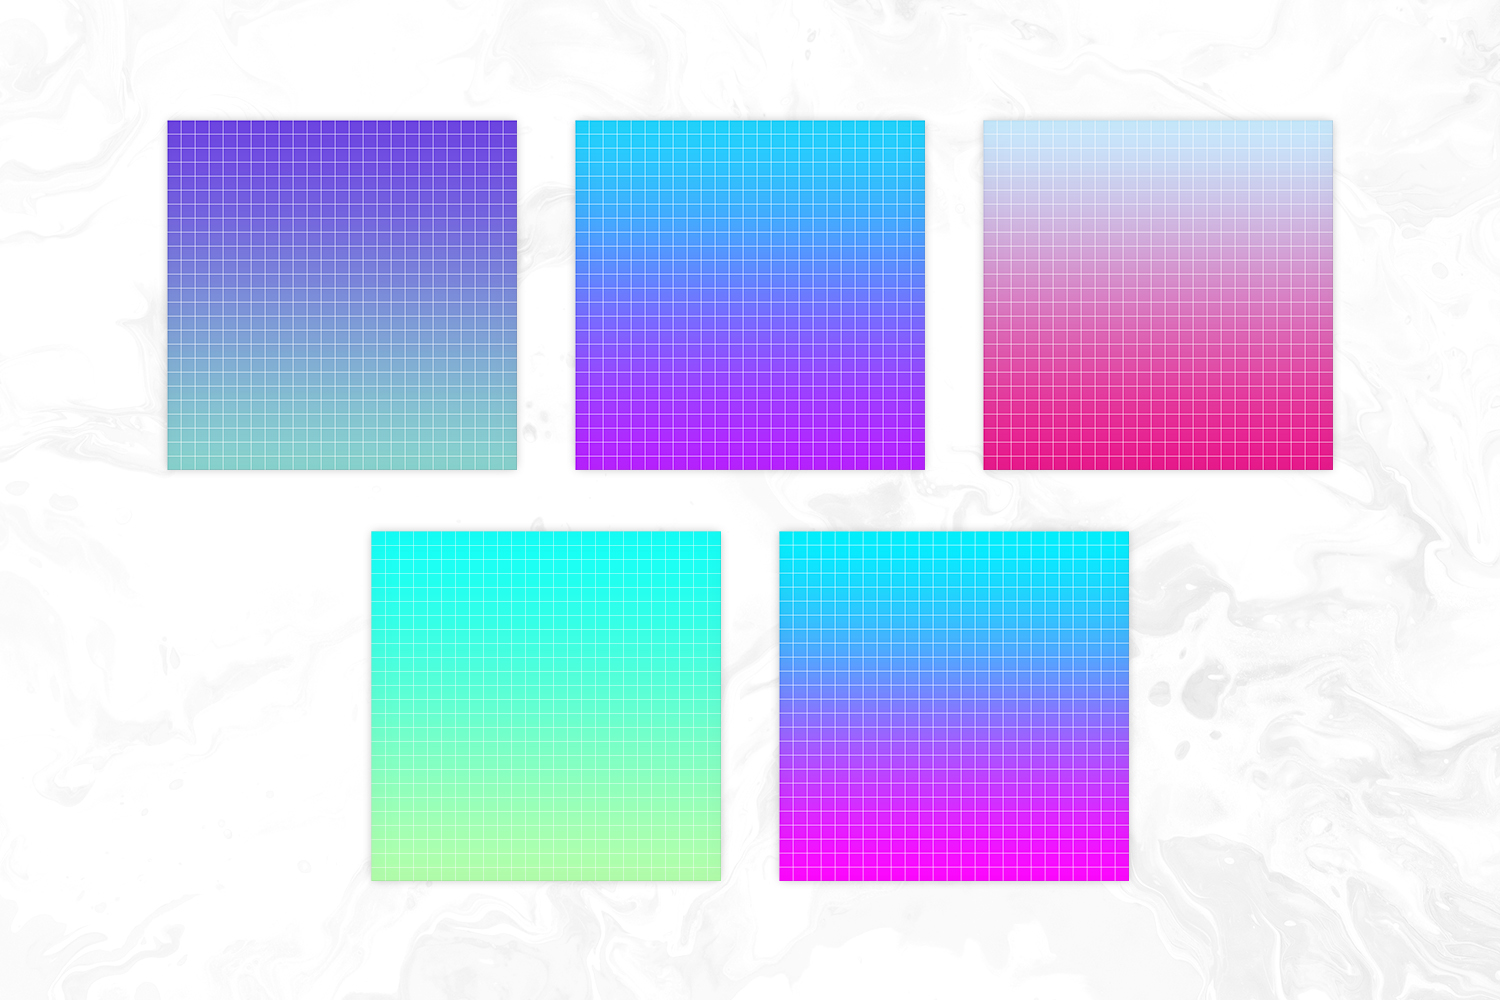 Seapunk Inspired Bright Gradient Big Grid Backgrounds example image 3